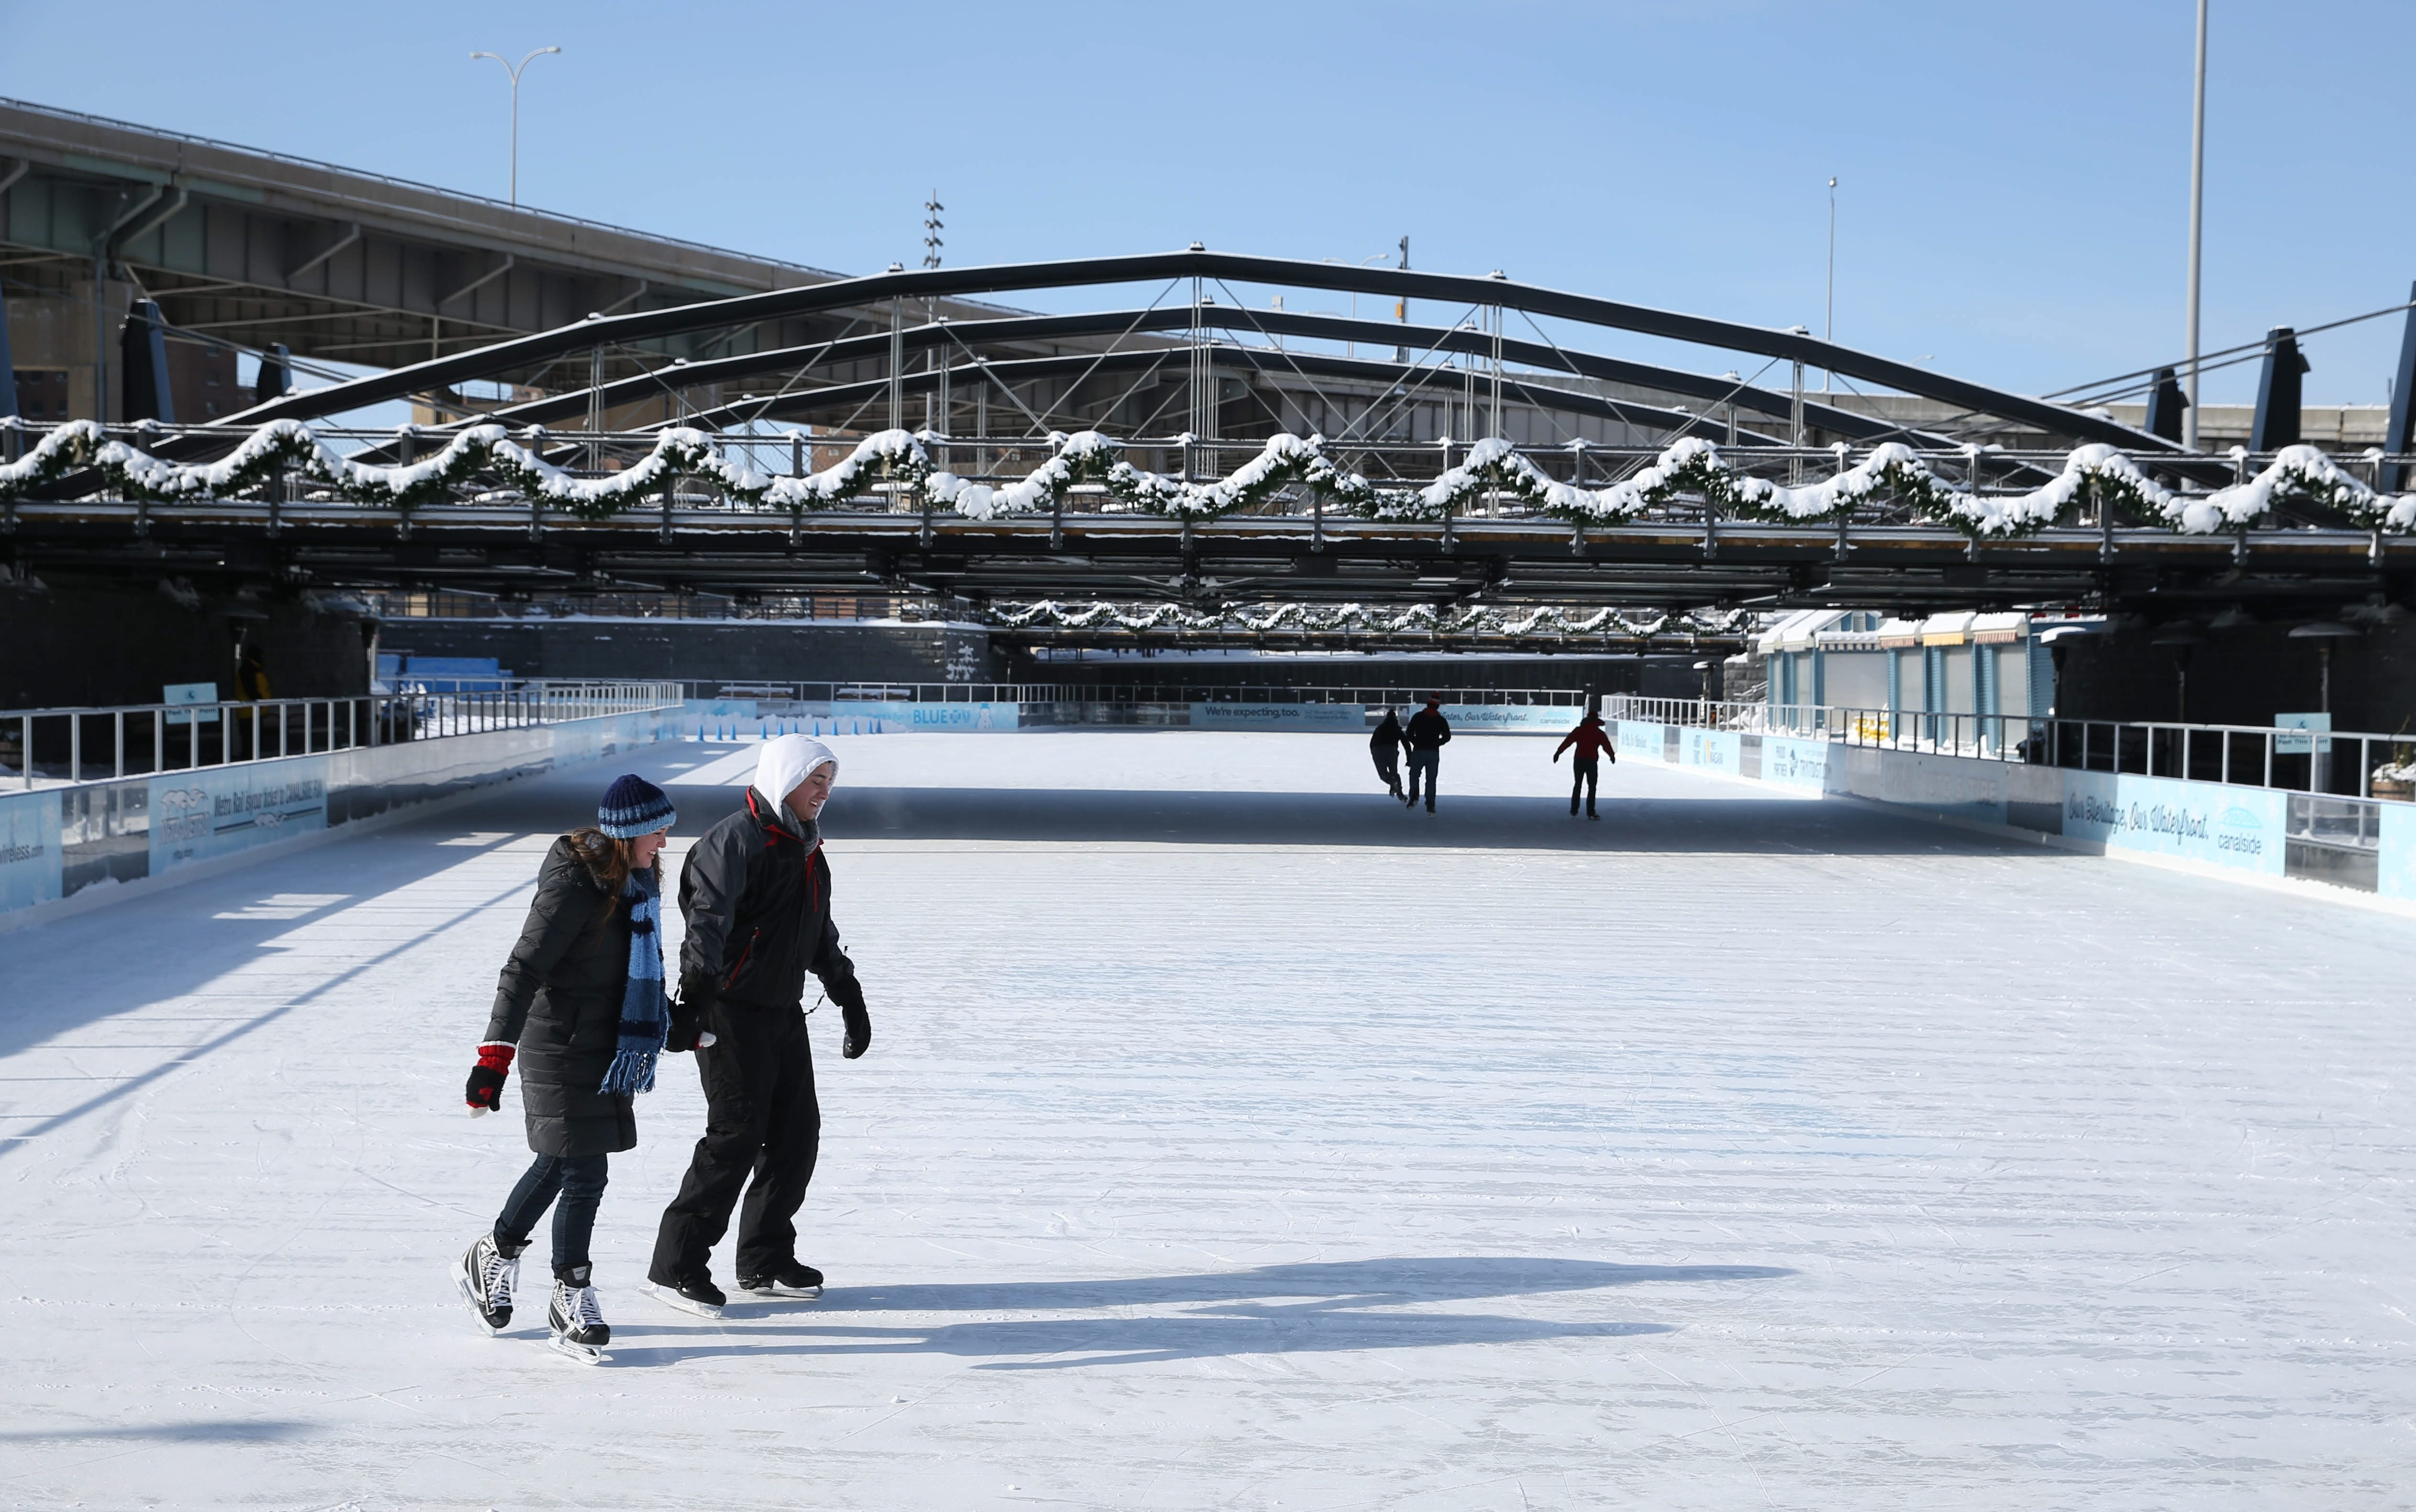 A handful of skaters were on the ice at canalside,  undeterred by the sub zero temperatures, Sunday, Feb. 15, 2015.  Tyler Gopen of West Seneca and his girlfriend Amanda Kohler of Ontario visited the rink for the first time.